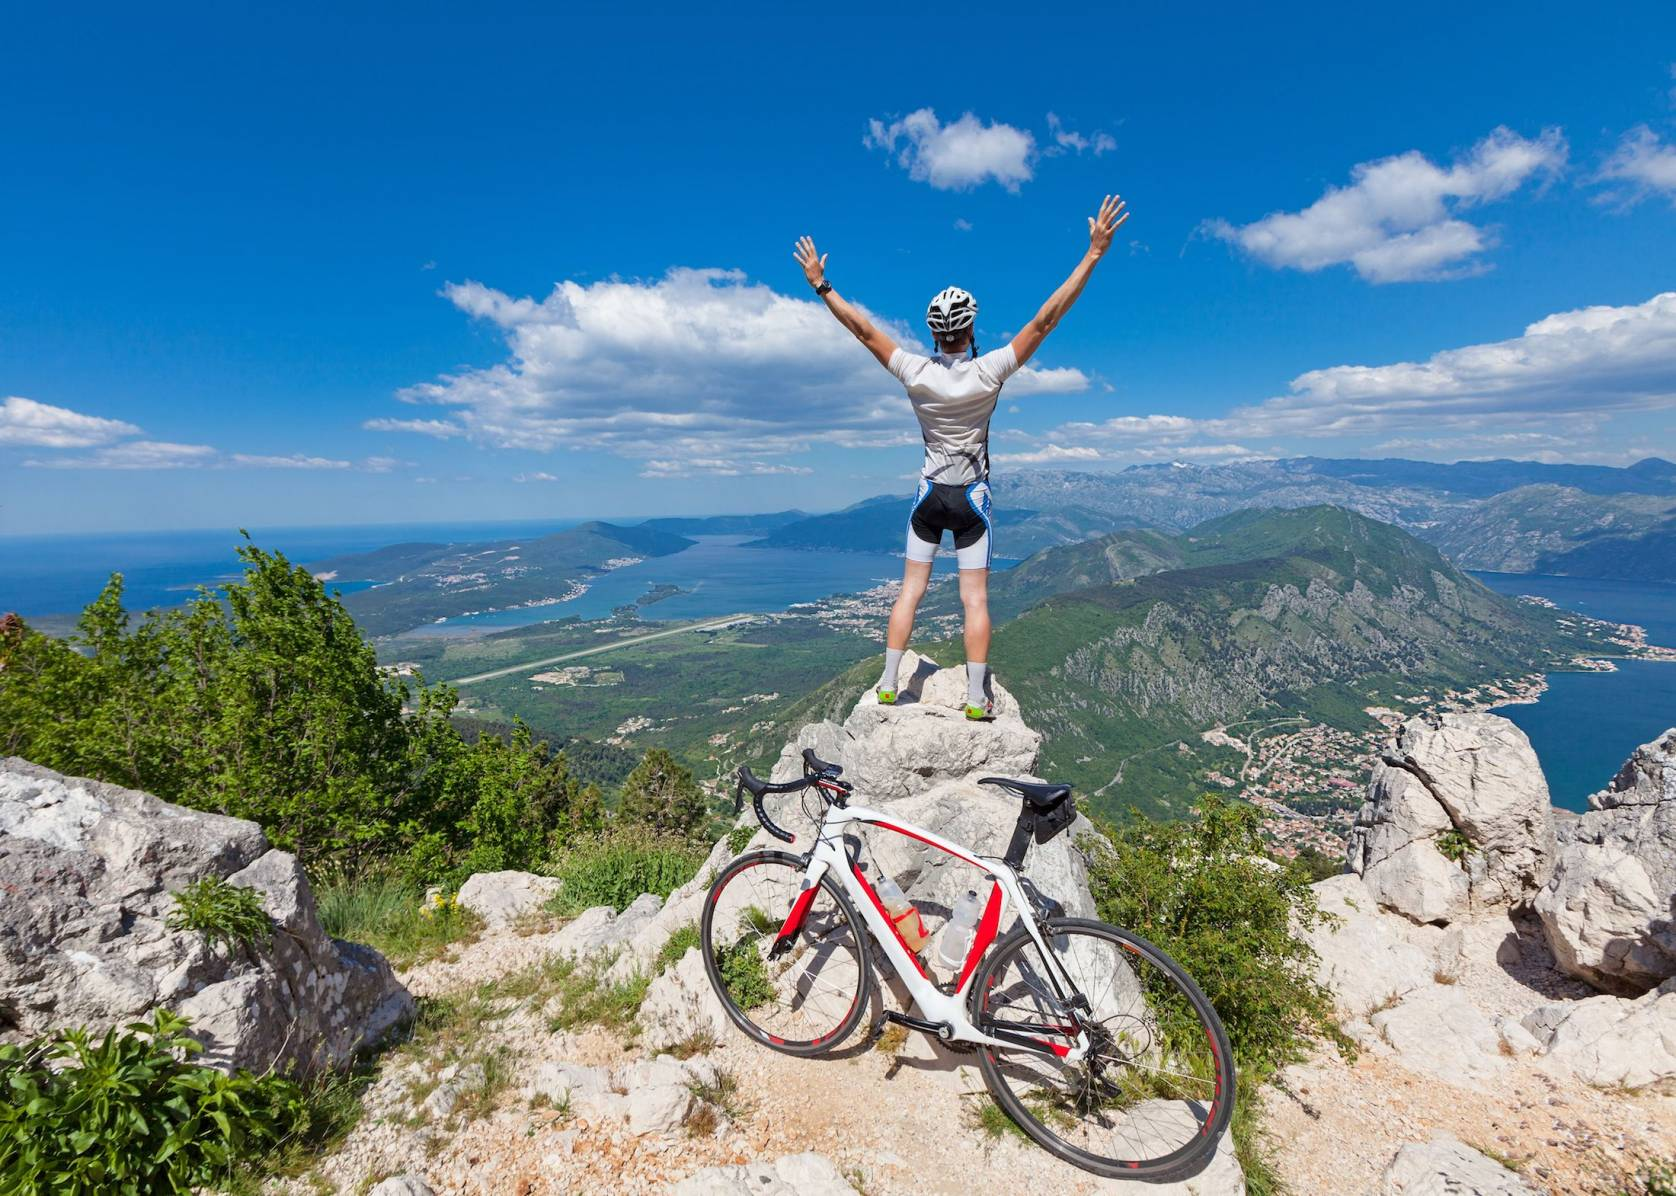 man standing on mountain top with arms outstretched with his bike nearby